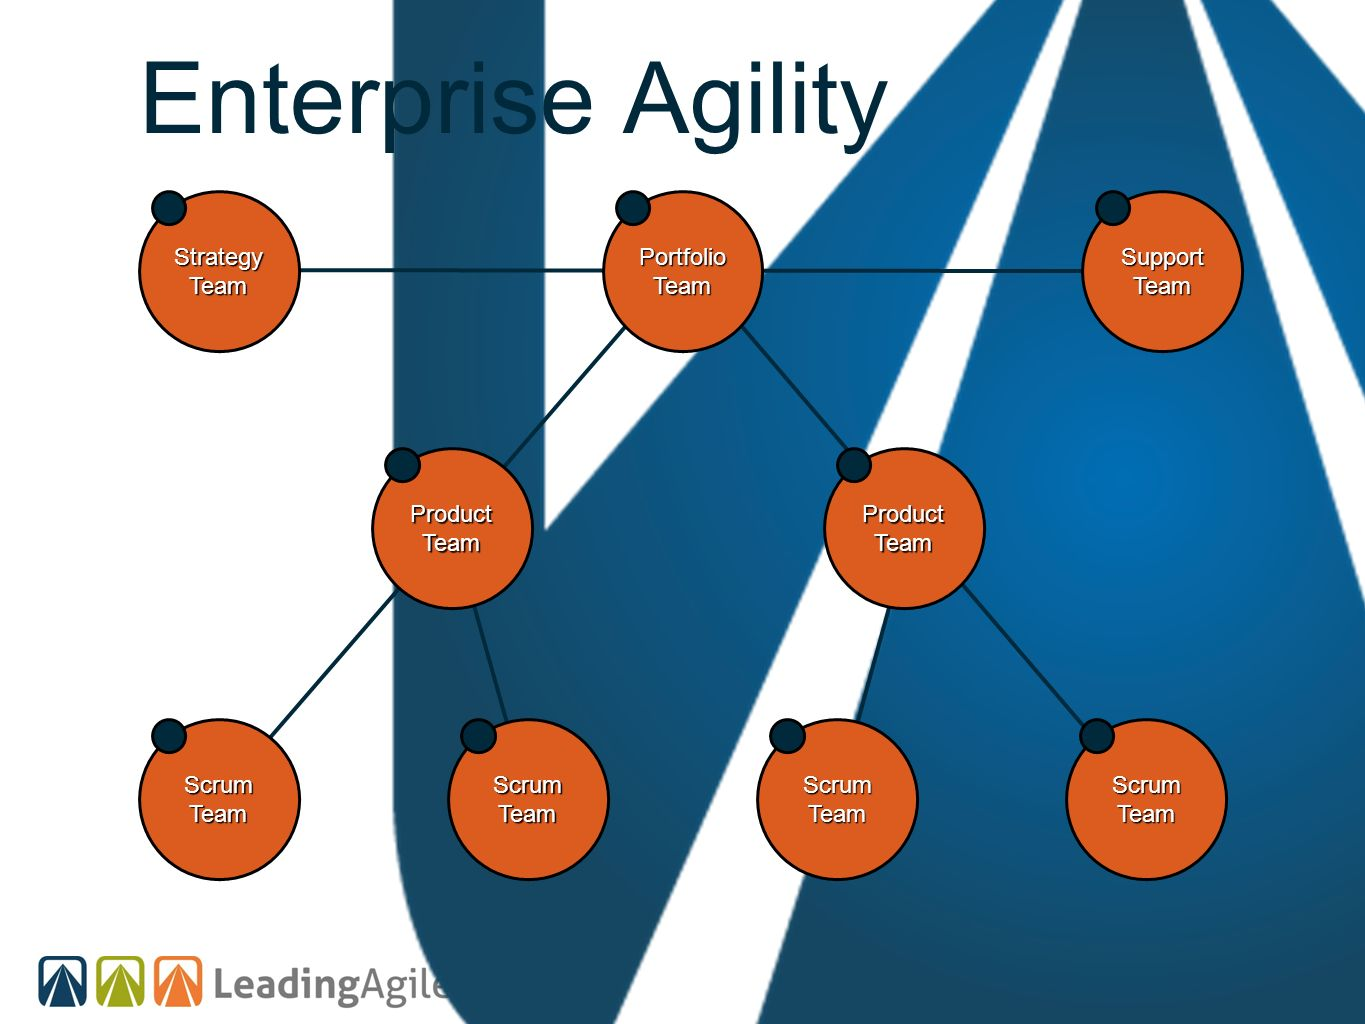 Enterprise Agility Scrum Team Portfolio Product Strategy Support